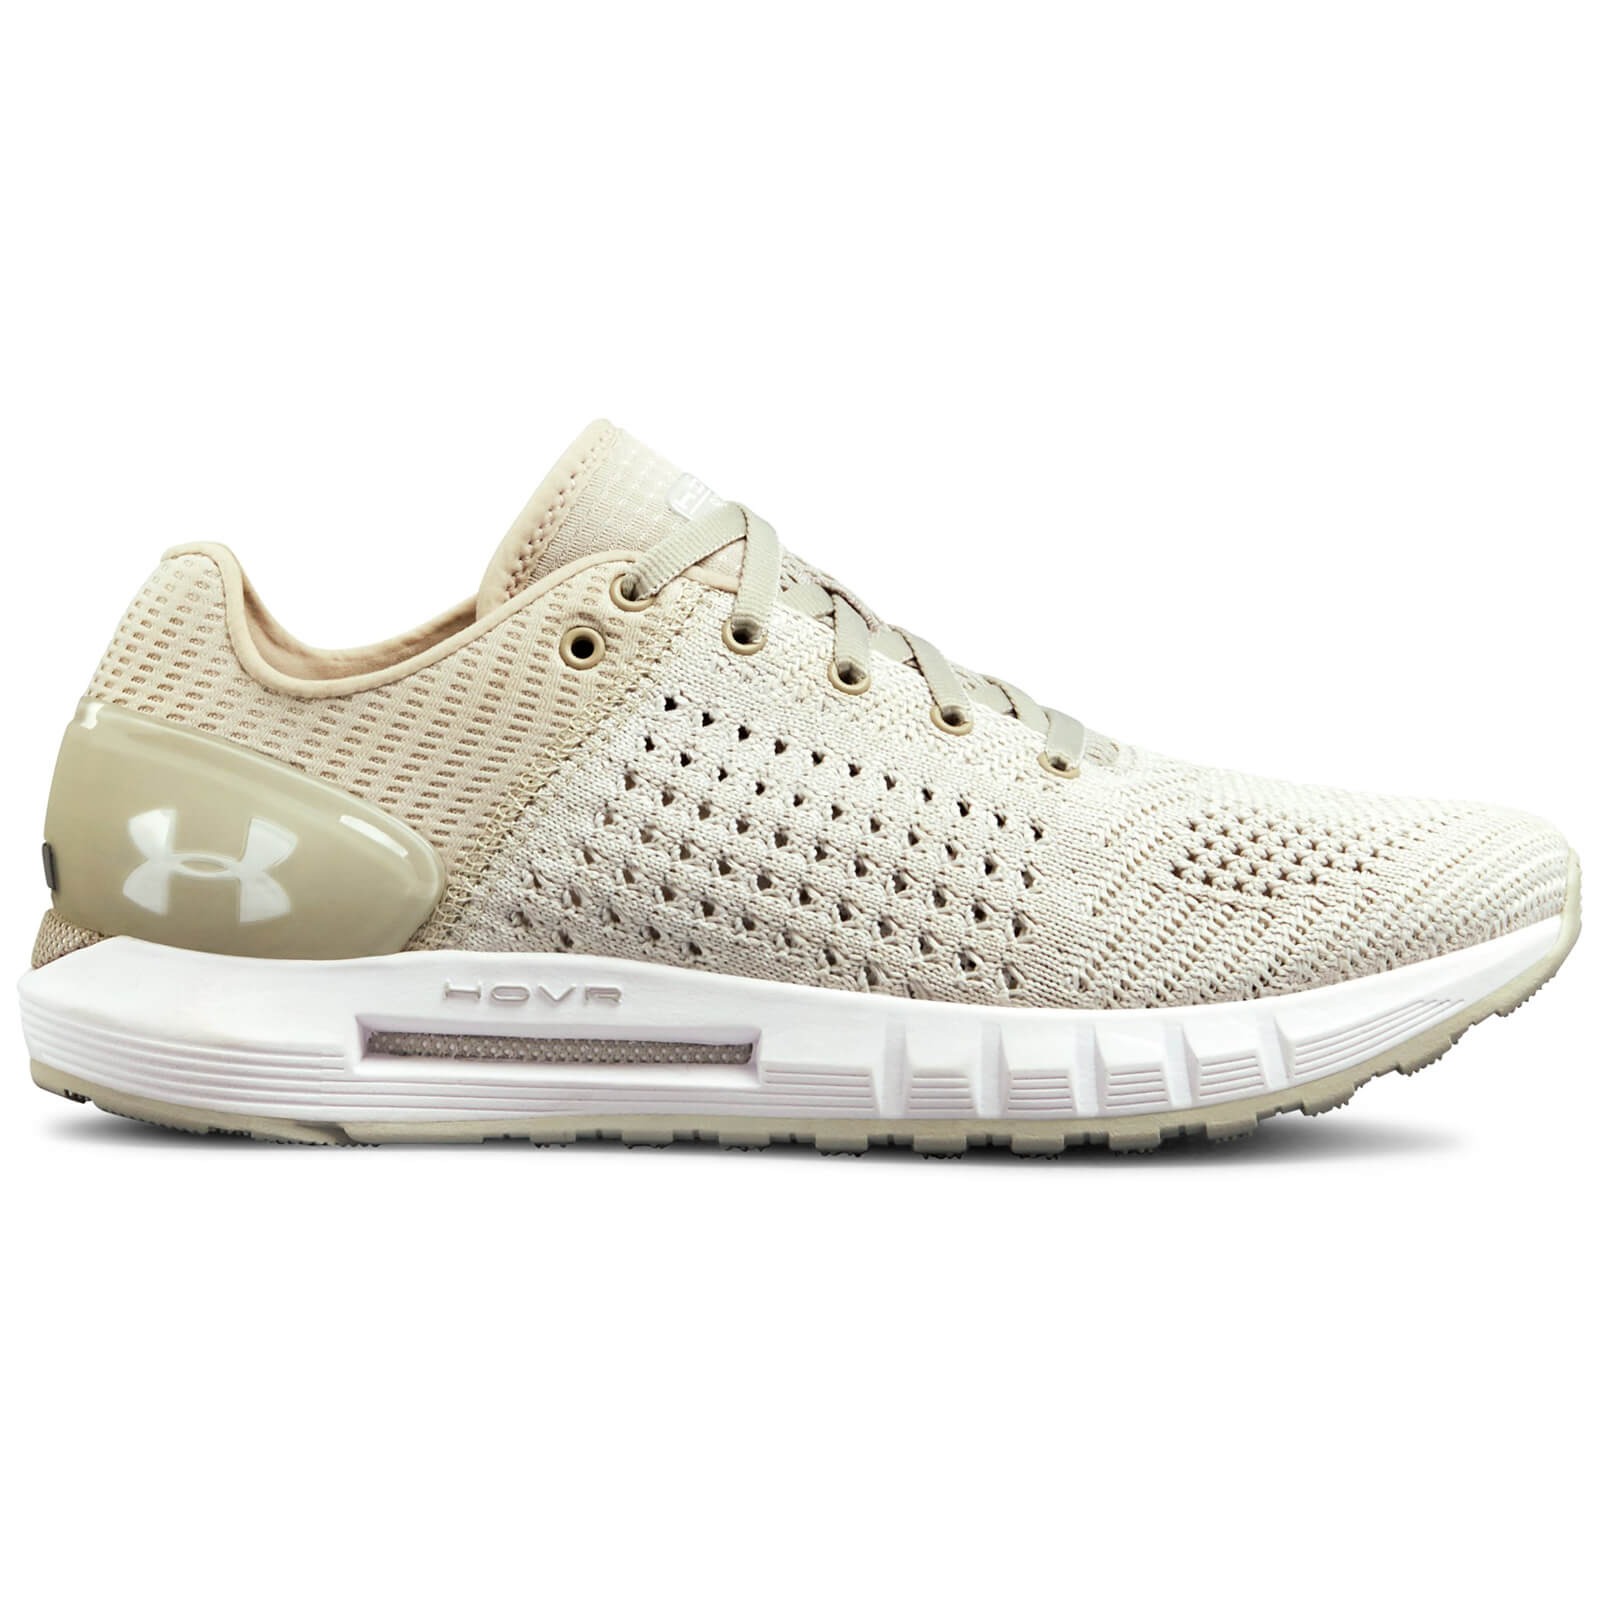 best service 5f52a ec1ae Under Armour Women's HOVR Sonic NC Running Shoes - White